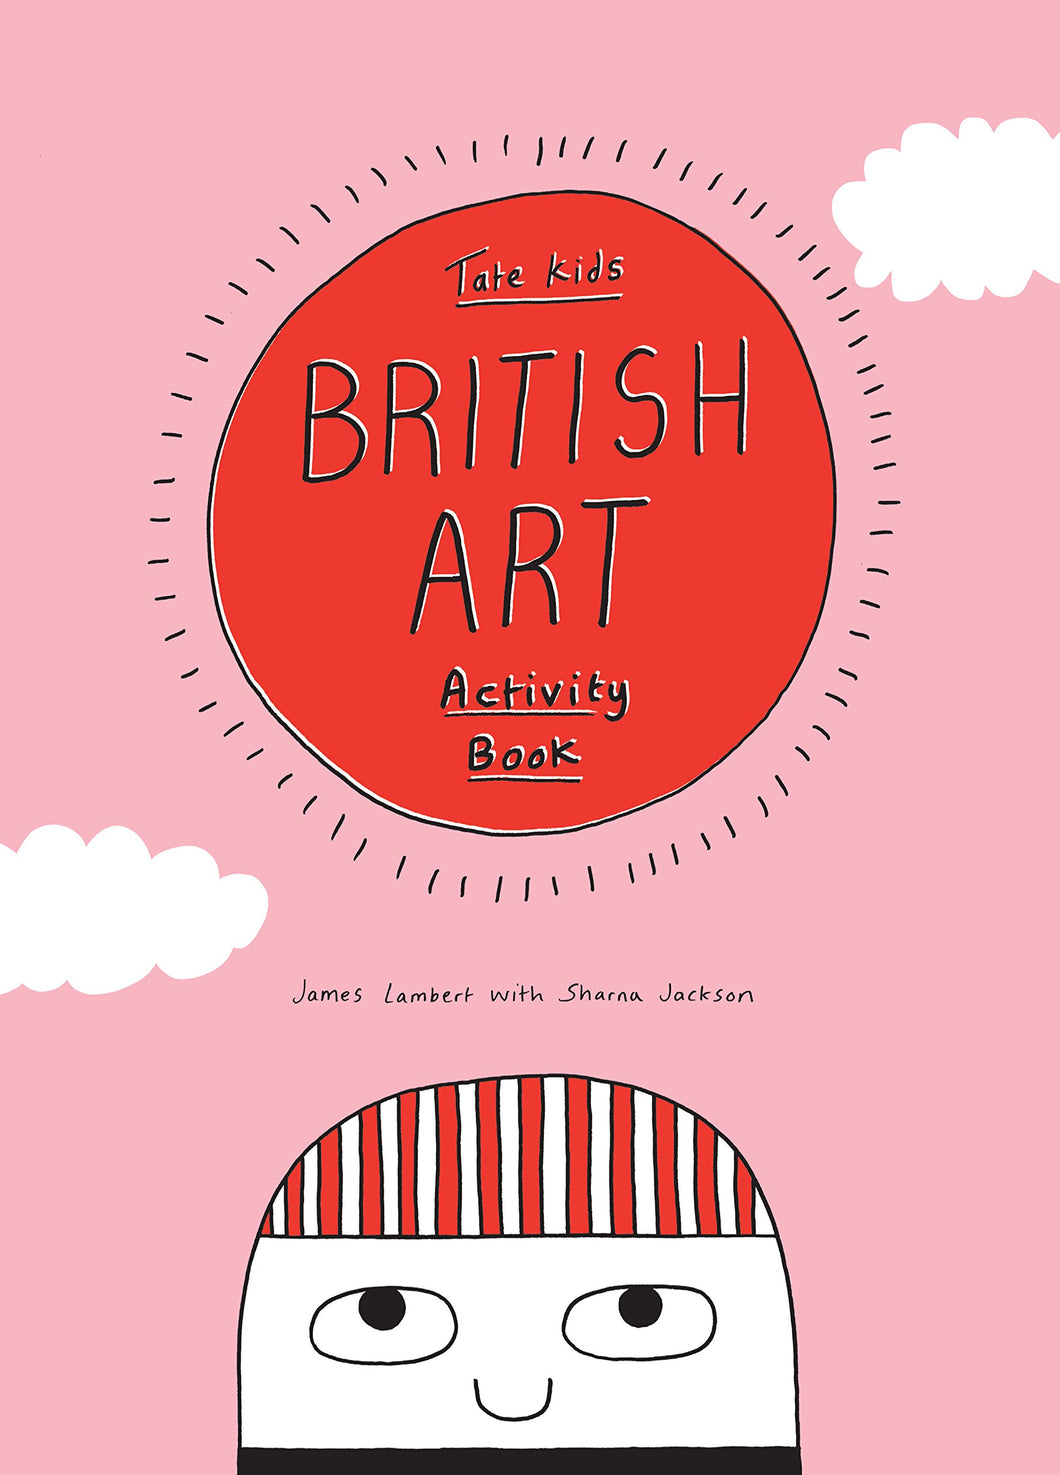 Tate Kids British Art Activity Book - Me Books Asia Store